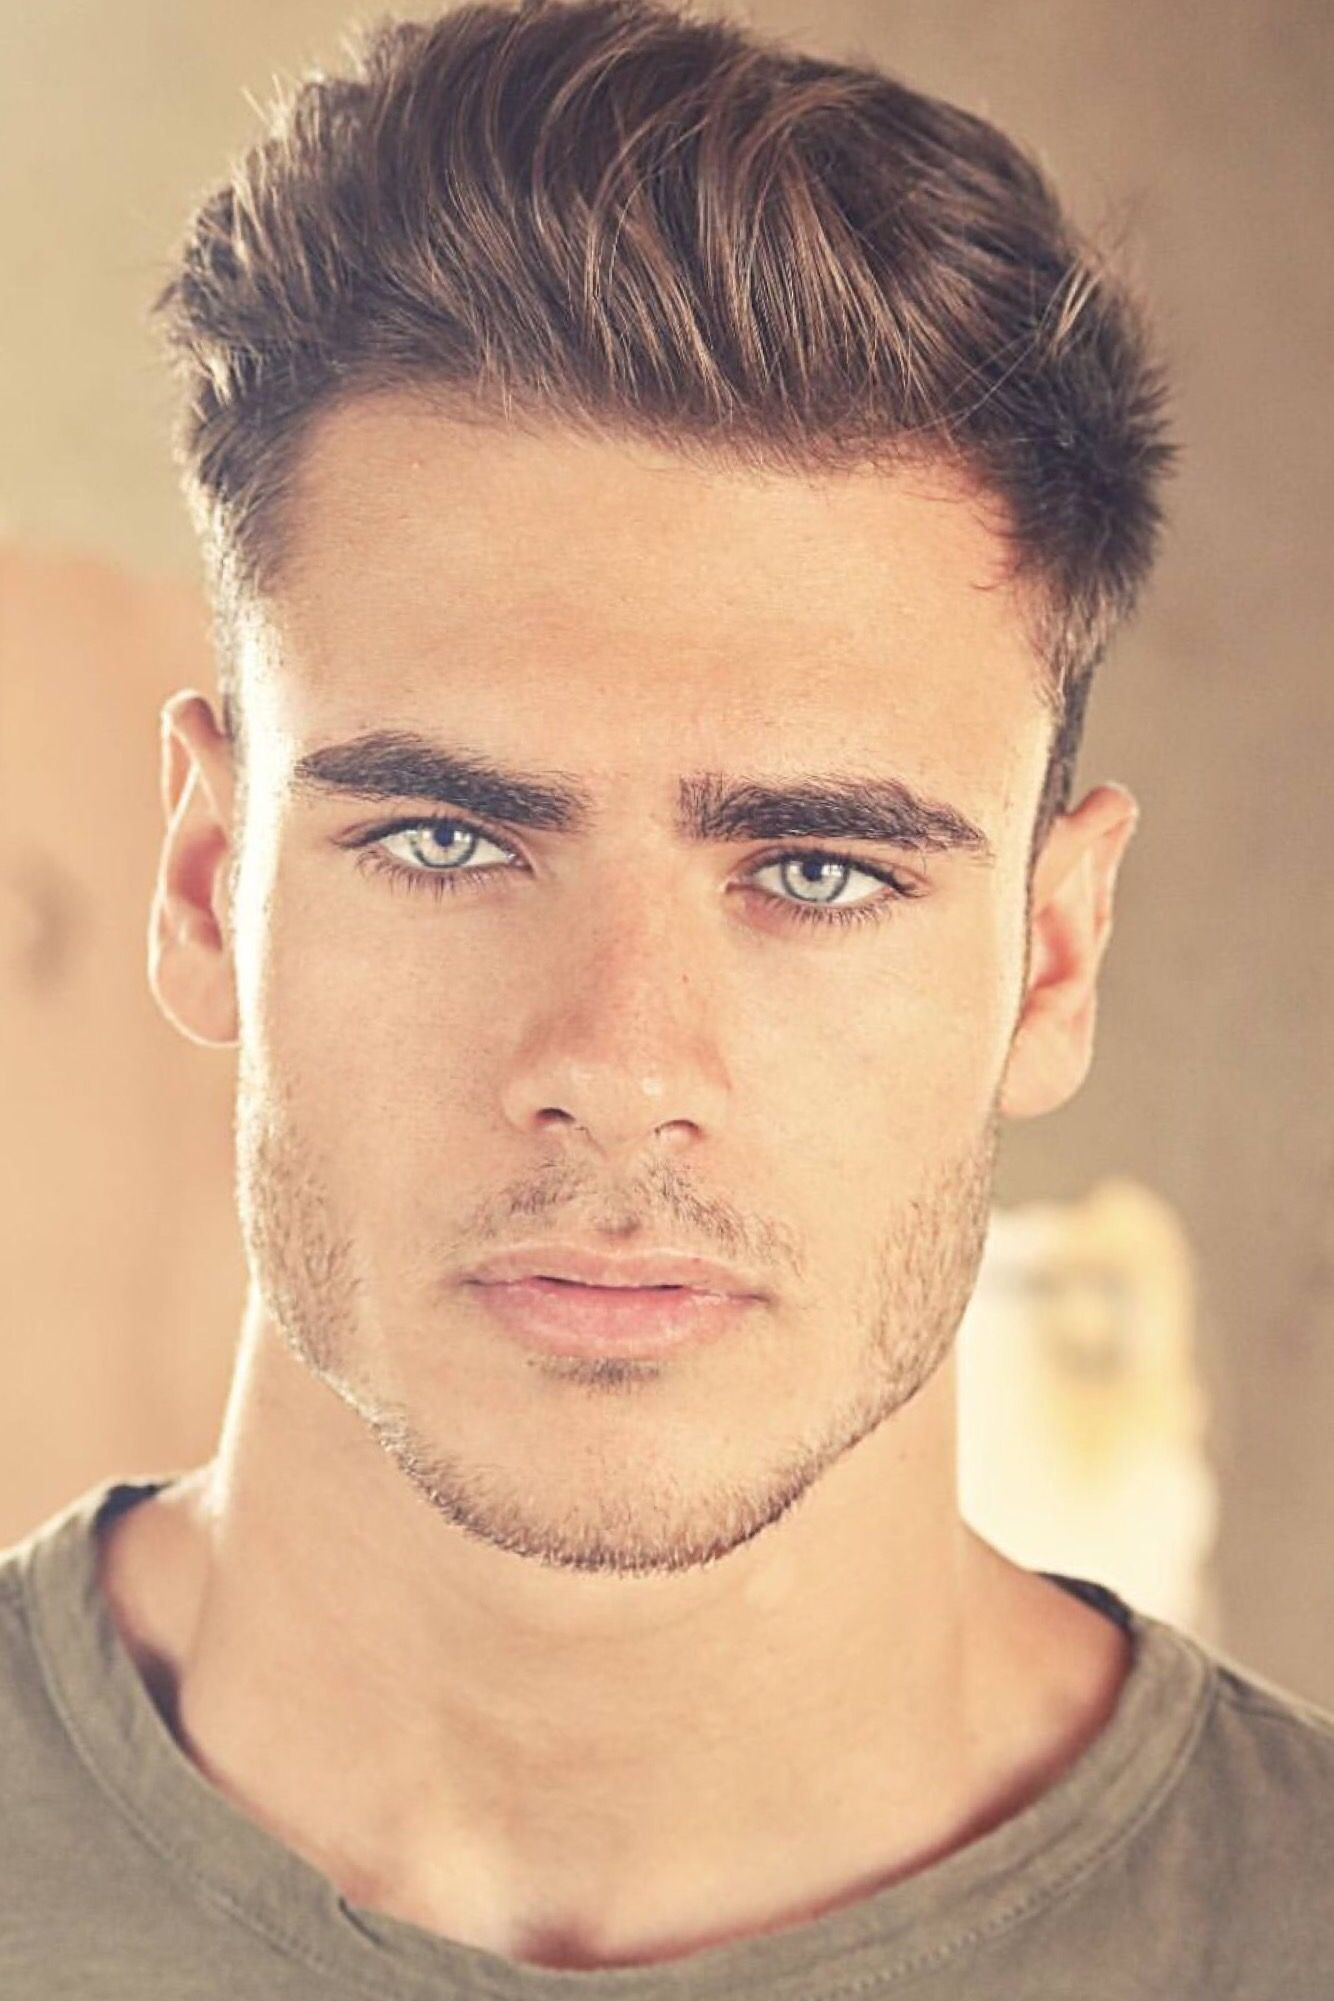 Trendy men haircuts jorge del rio romero  citas de fotos  pinterest  eye face and